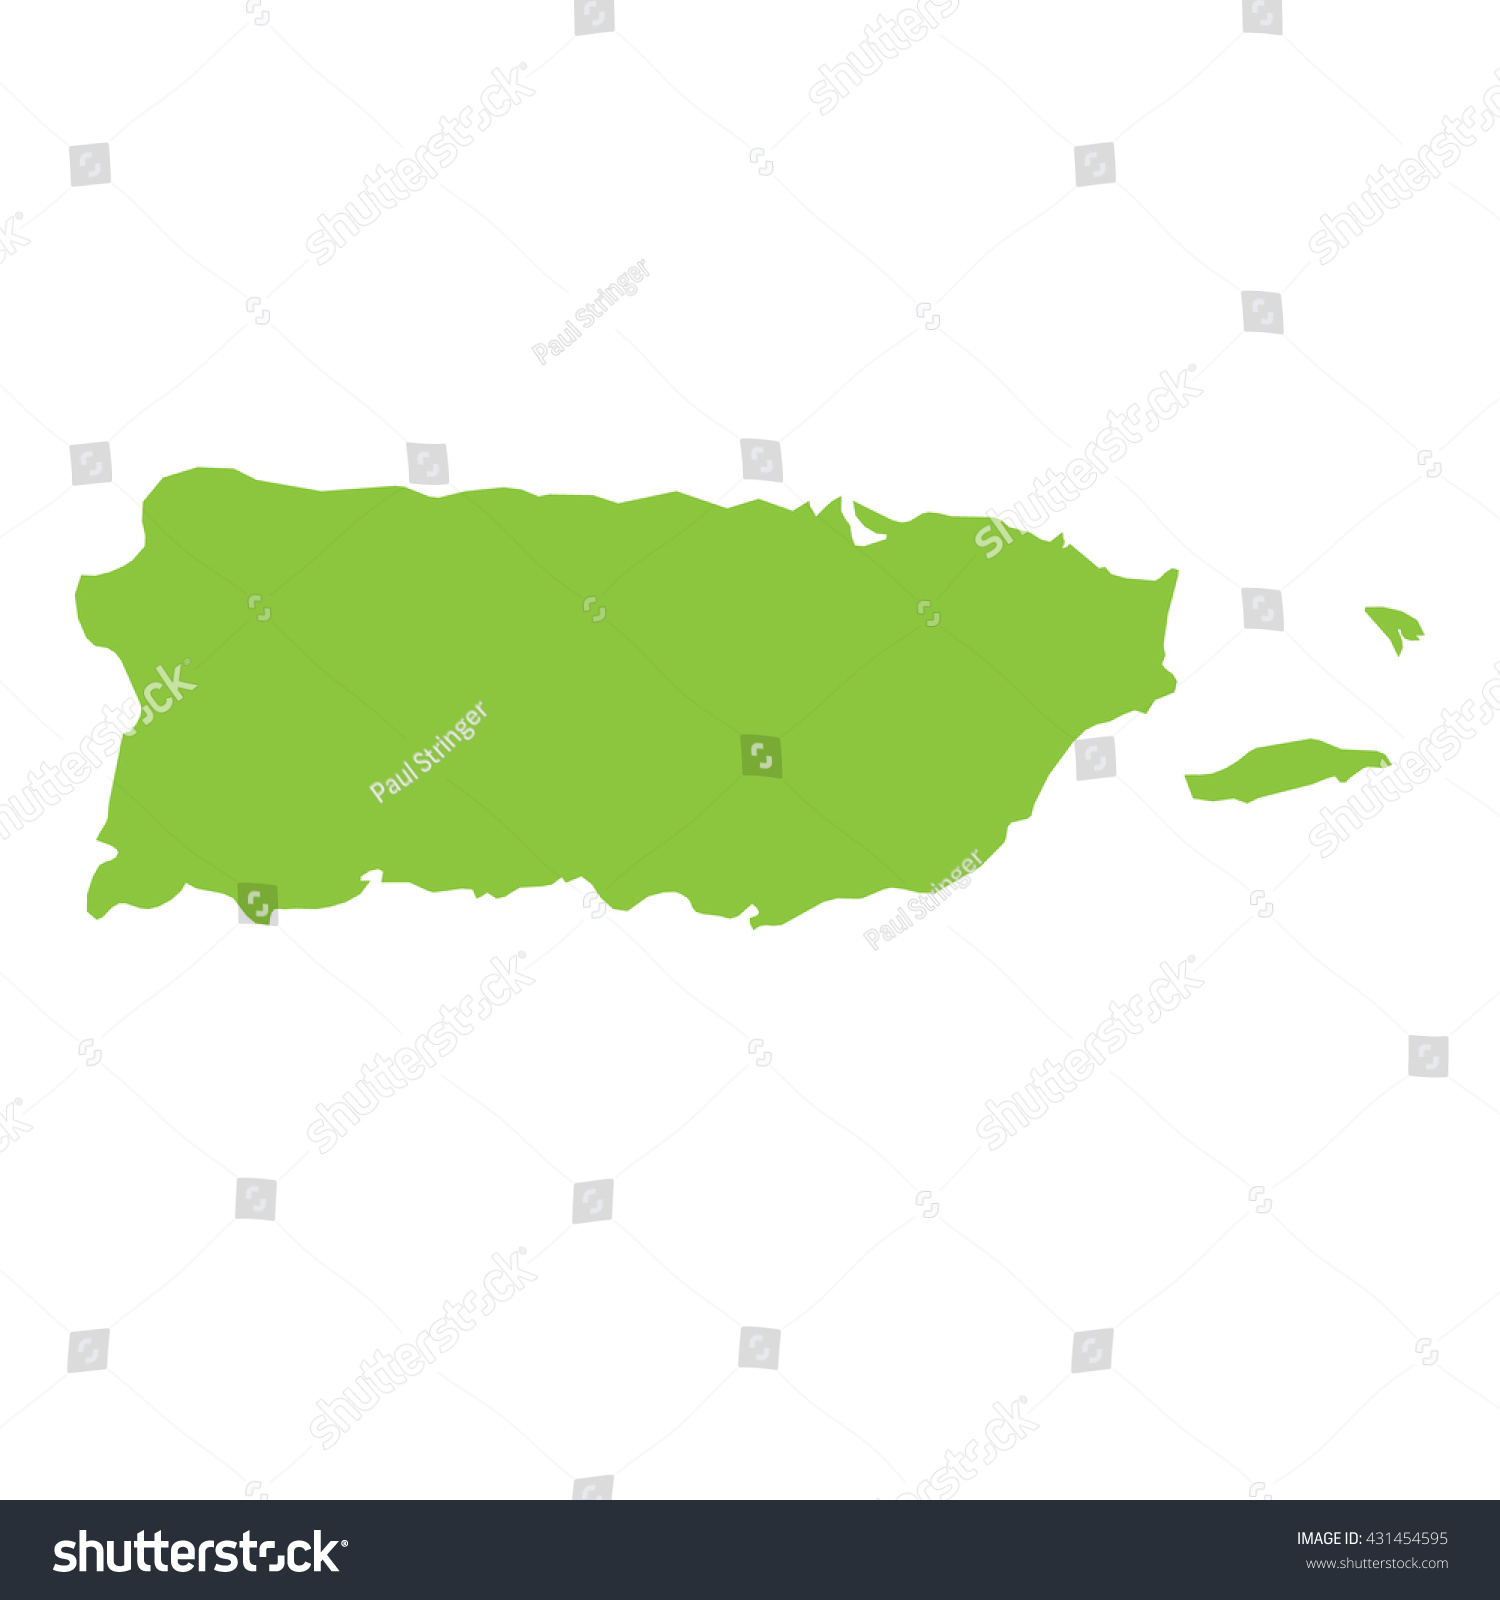 an introduction to the country of puerto rico Others claim that puerto rico would be too much of a burden for this country to manage puerto ricans in 1900 president mckinley endorsed a program for the gradual introduction of autonomy to the island worked with new governor of puerto rico.